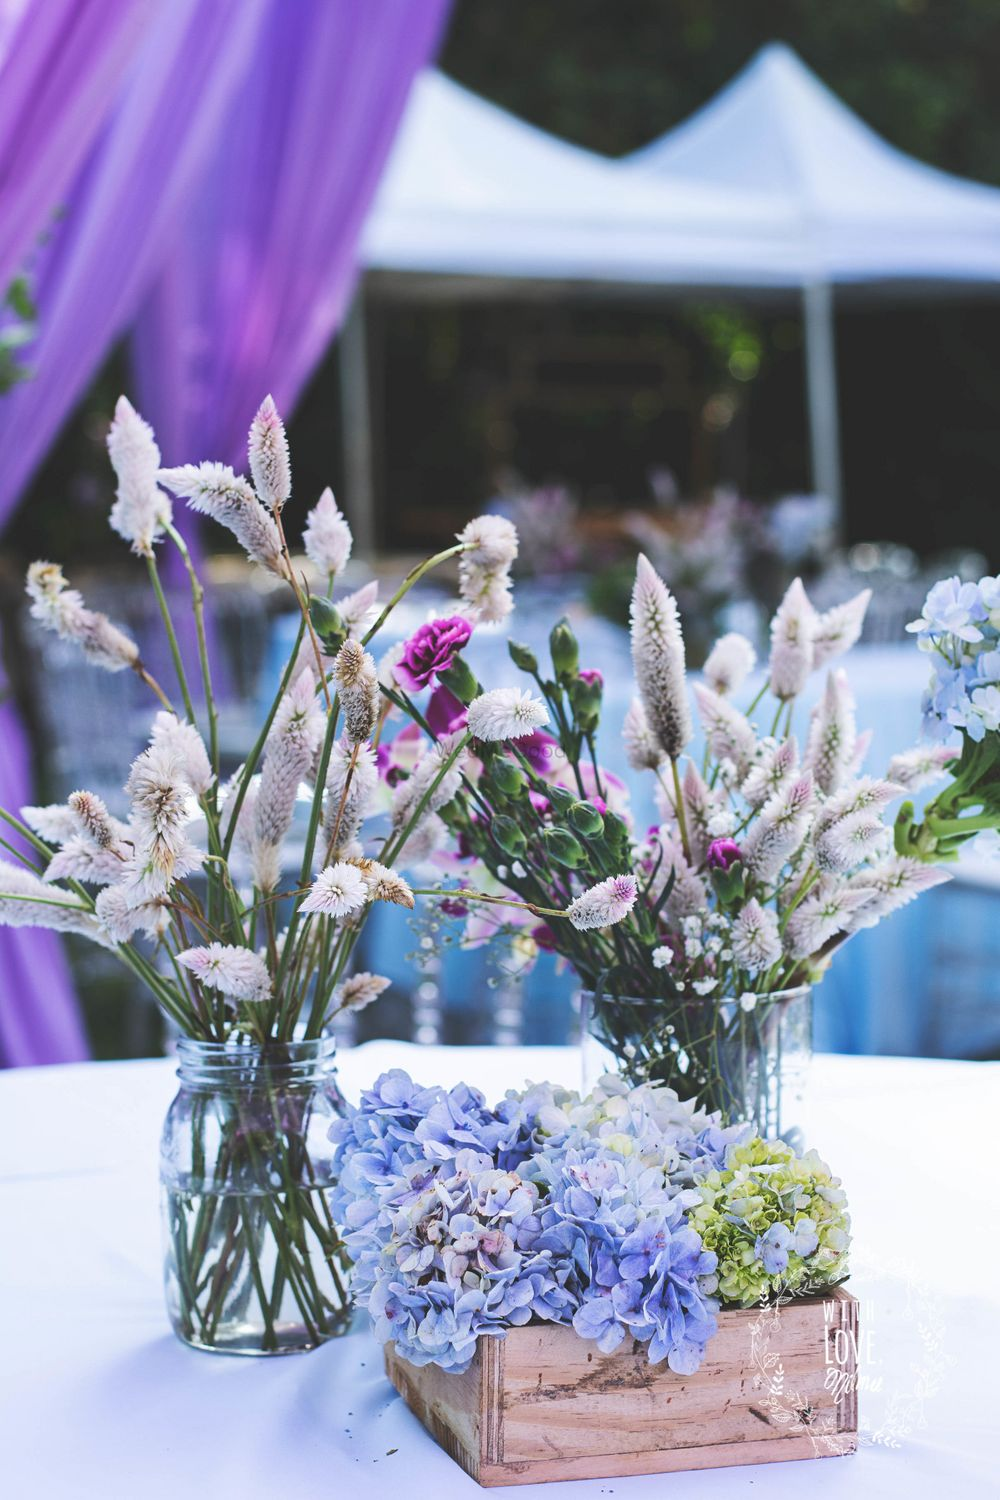 Photo From Blooming Flowers & Hues of Lavender - By With Love Nilma